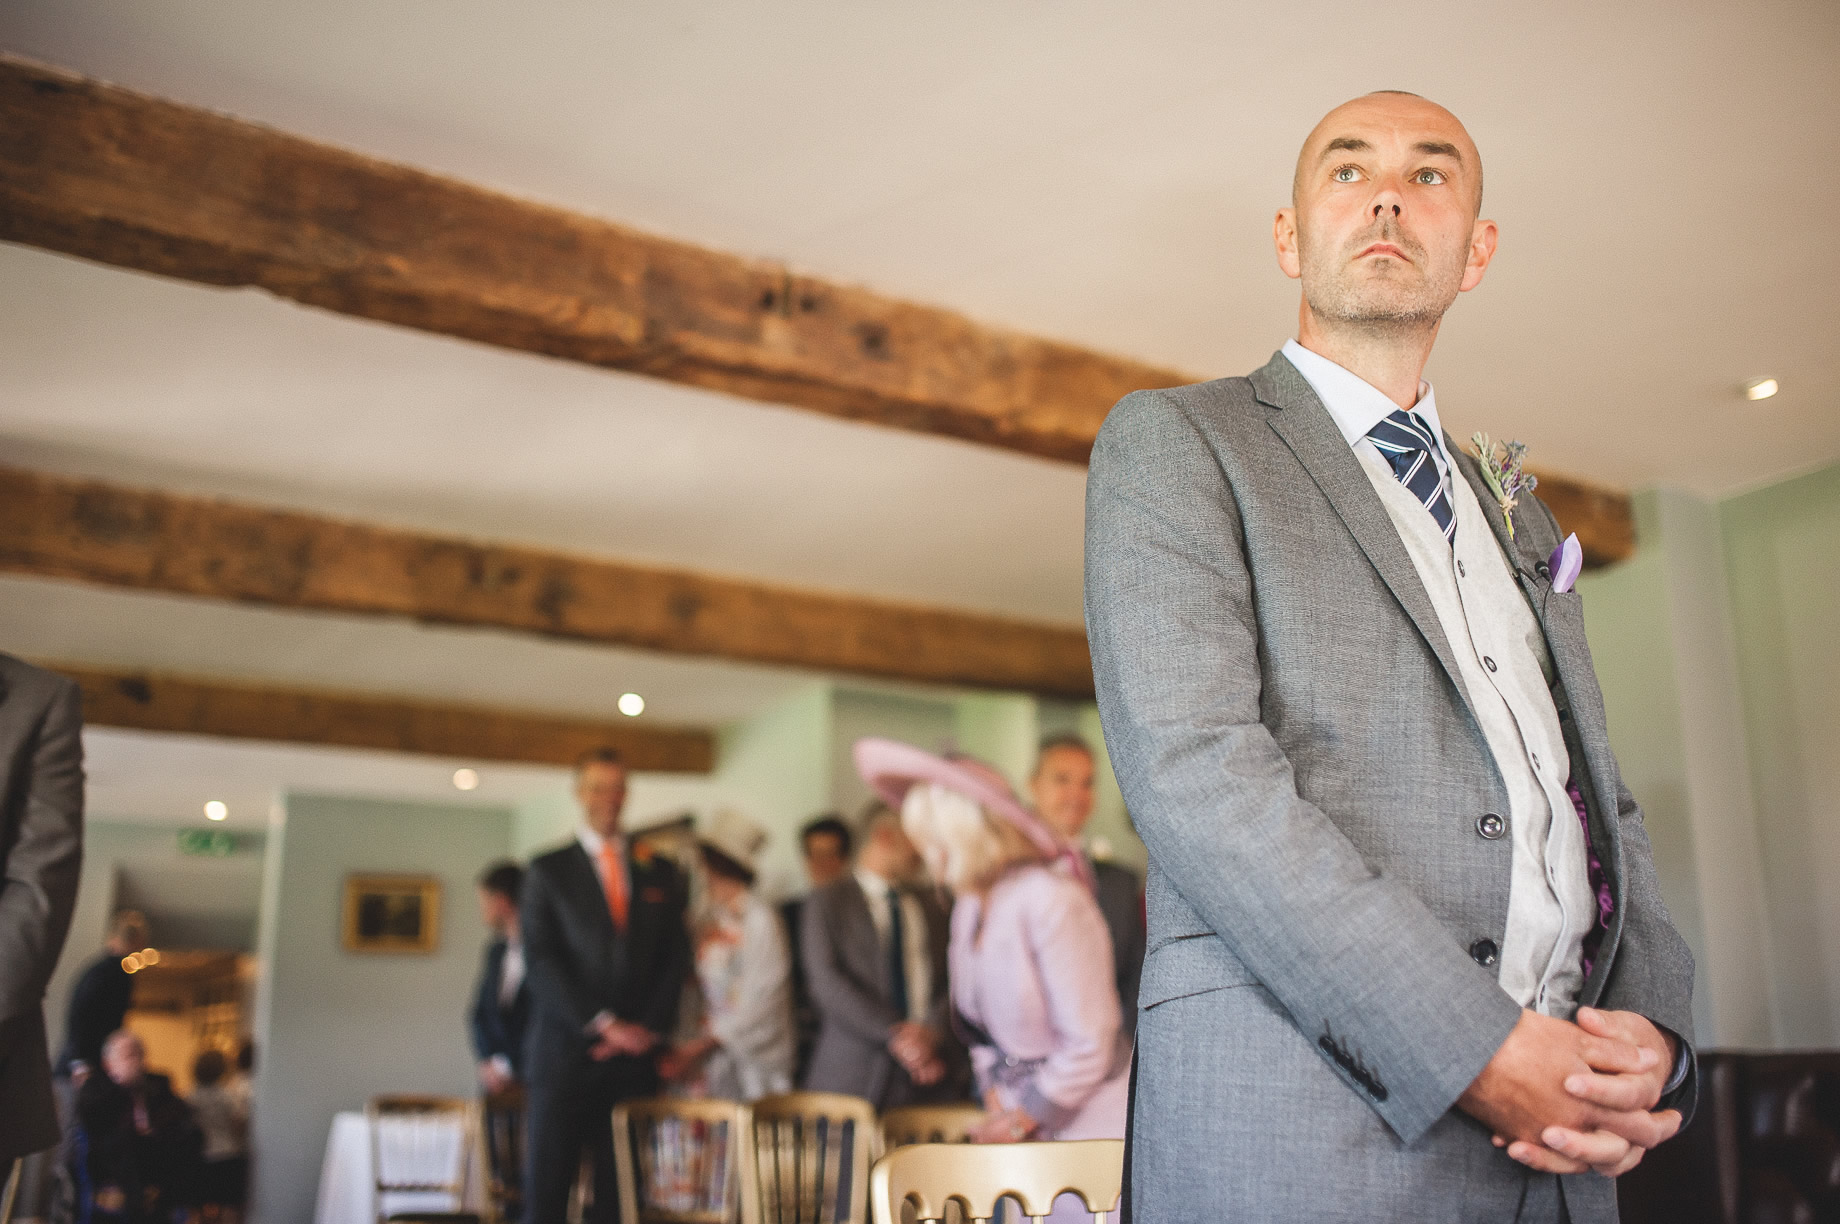 Tess and Paul's Wedding at The Inn at Whitewell 069